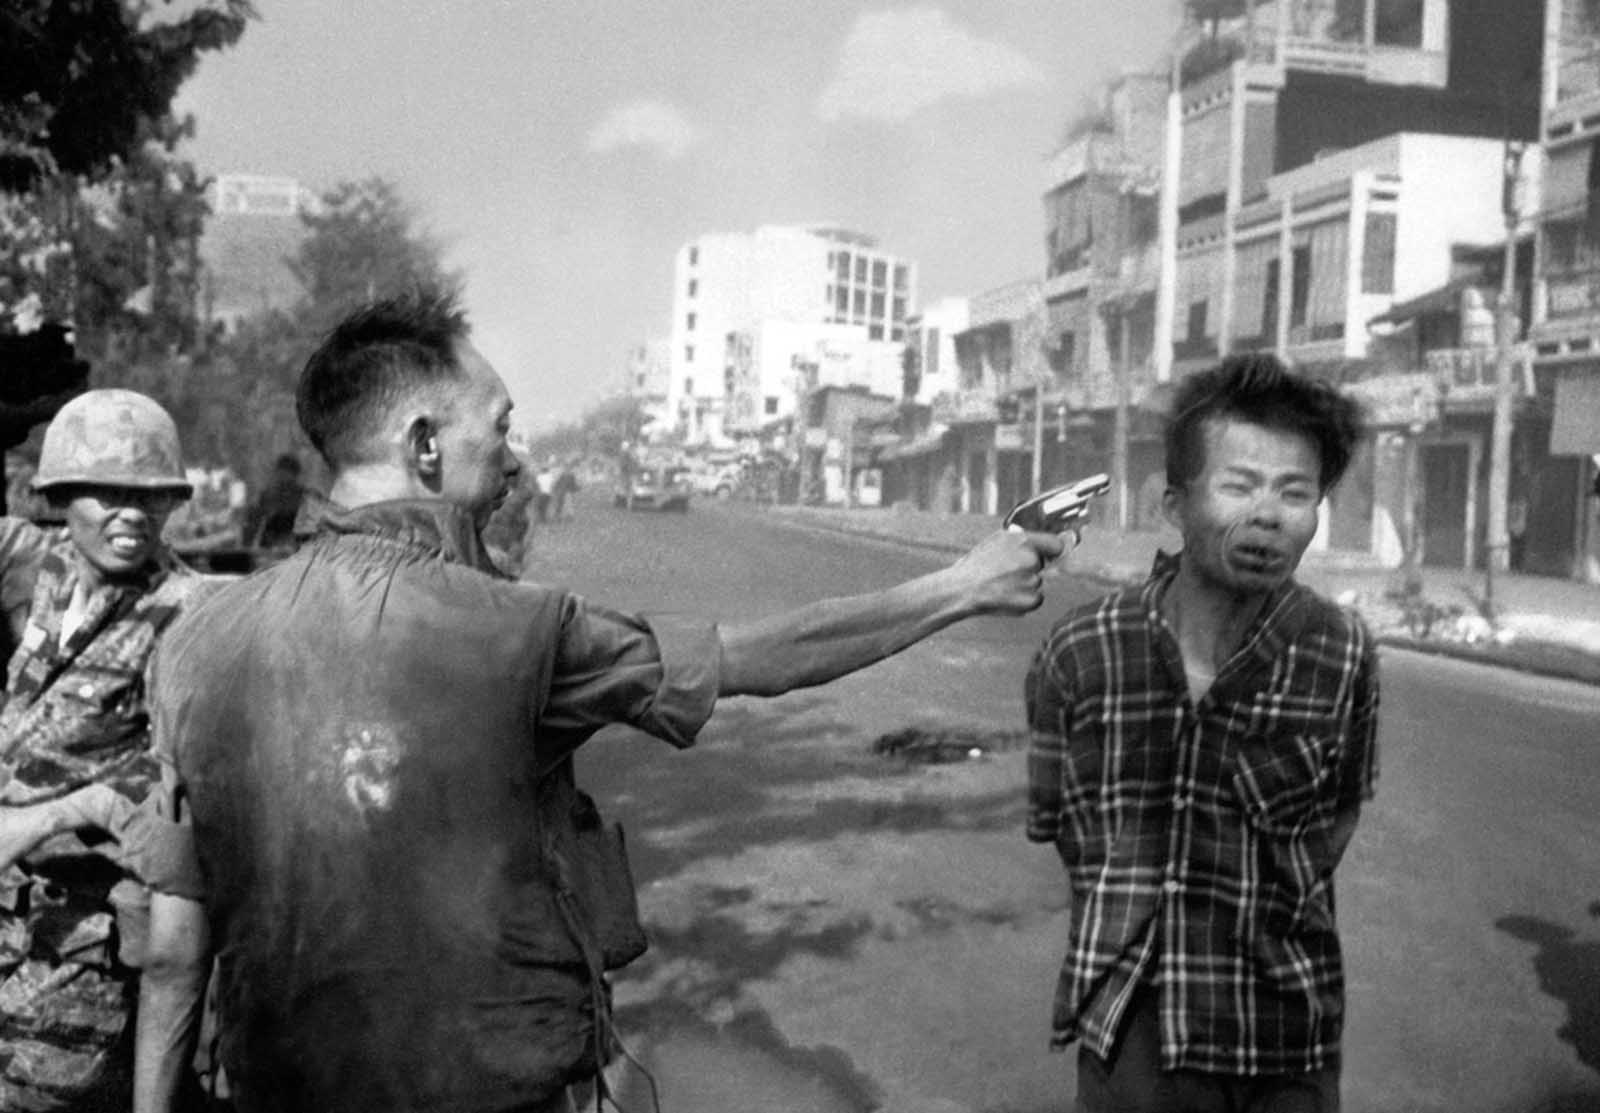 The south vietnamese general nguyen ngoc loan chief of the national police fires his pistol into the head of suspected viet cong officer nguyen van lem